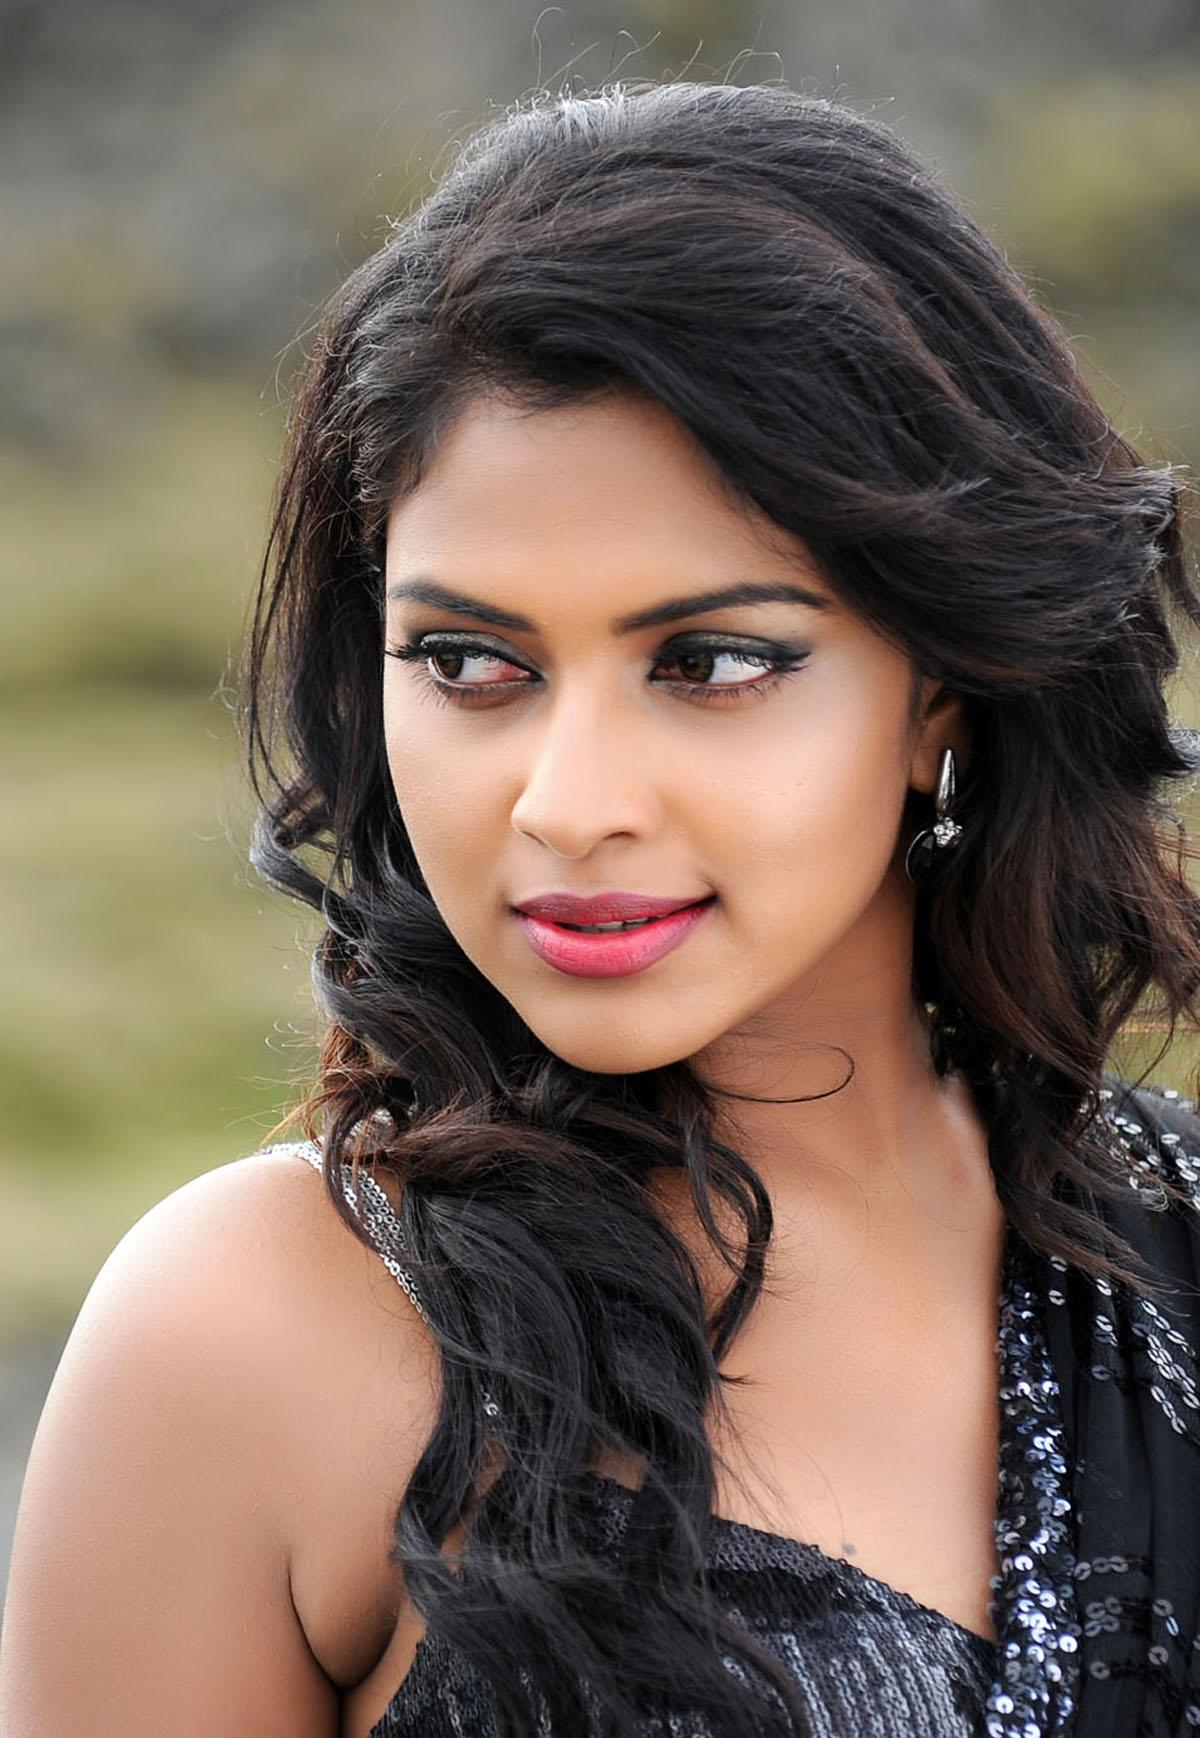 Amala Paul Sex Images here are some beautiful looking photos of south actress